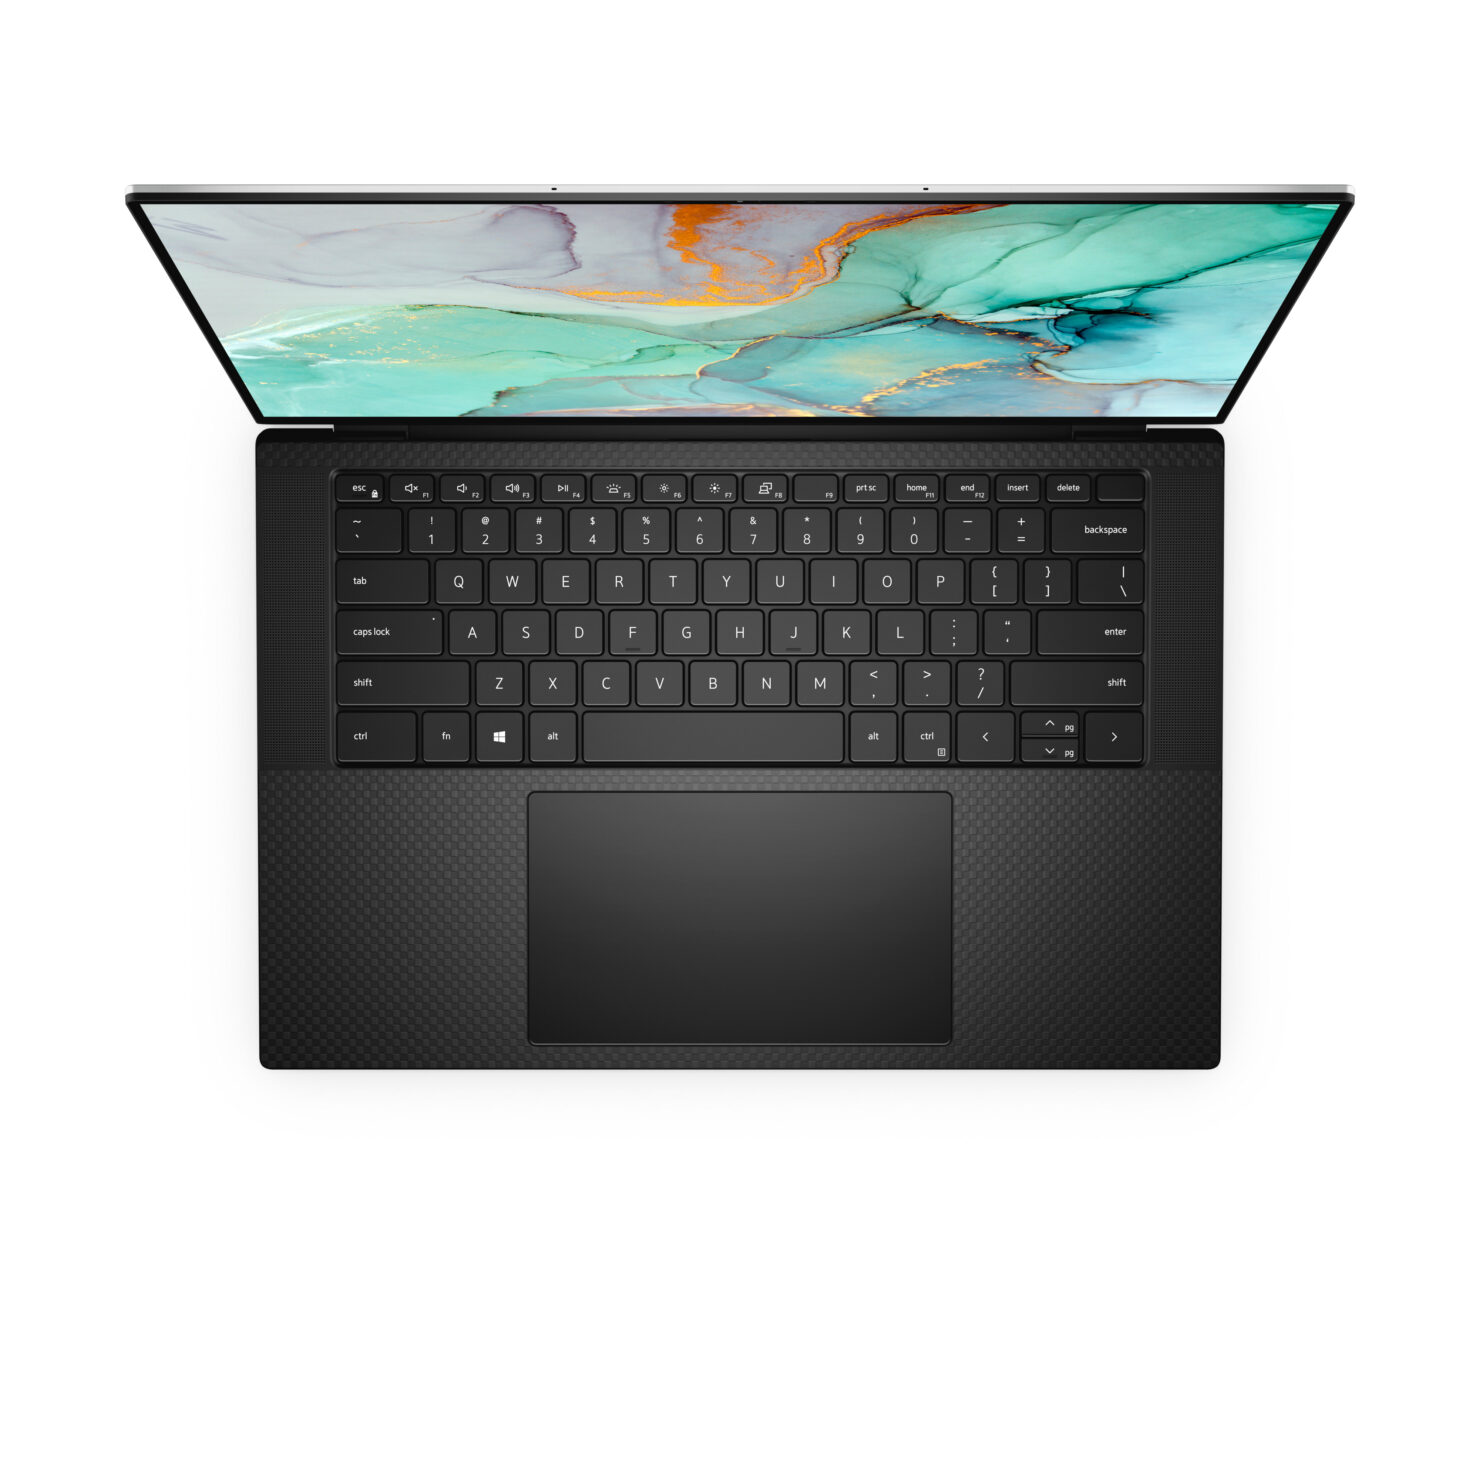 xps-15-9000-series-touch-notebook